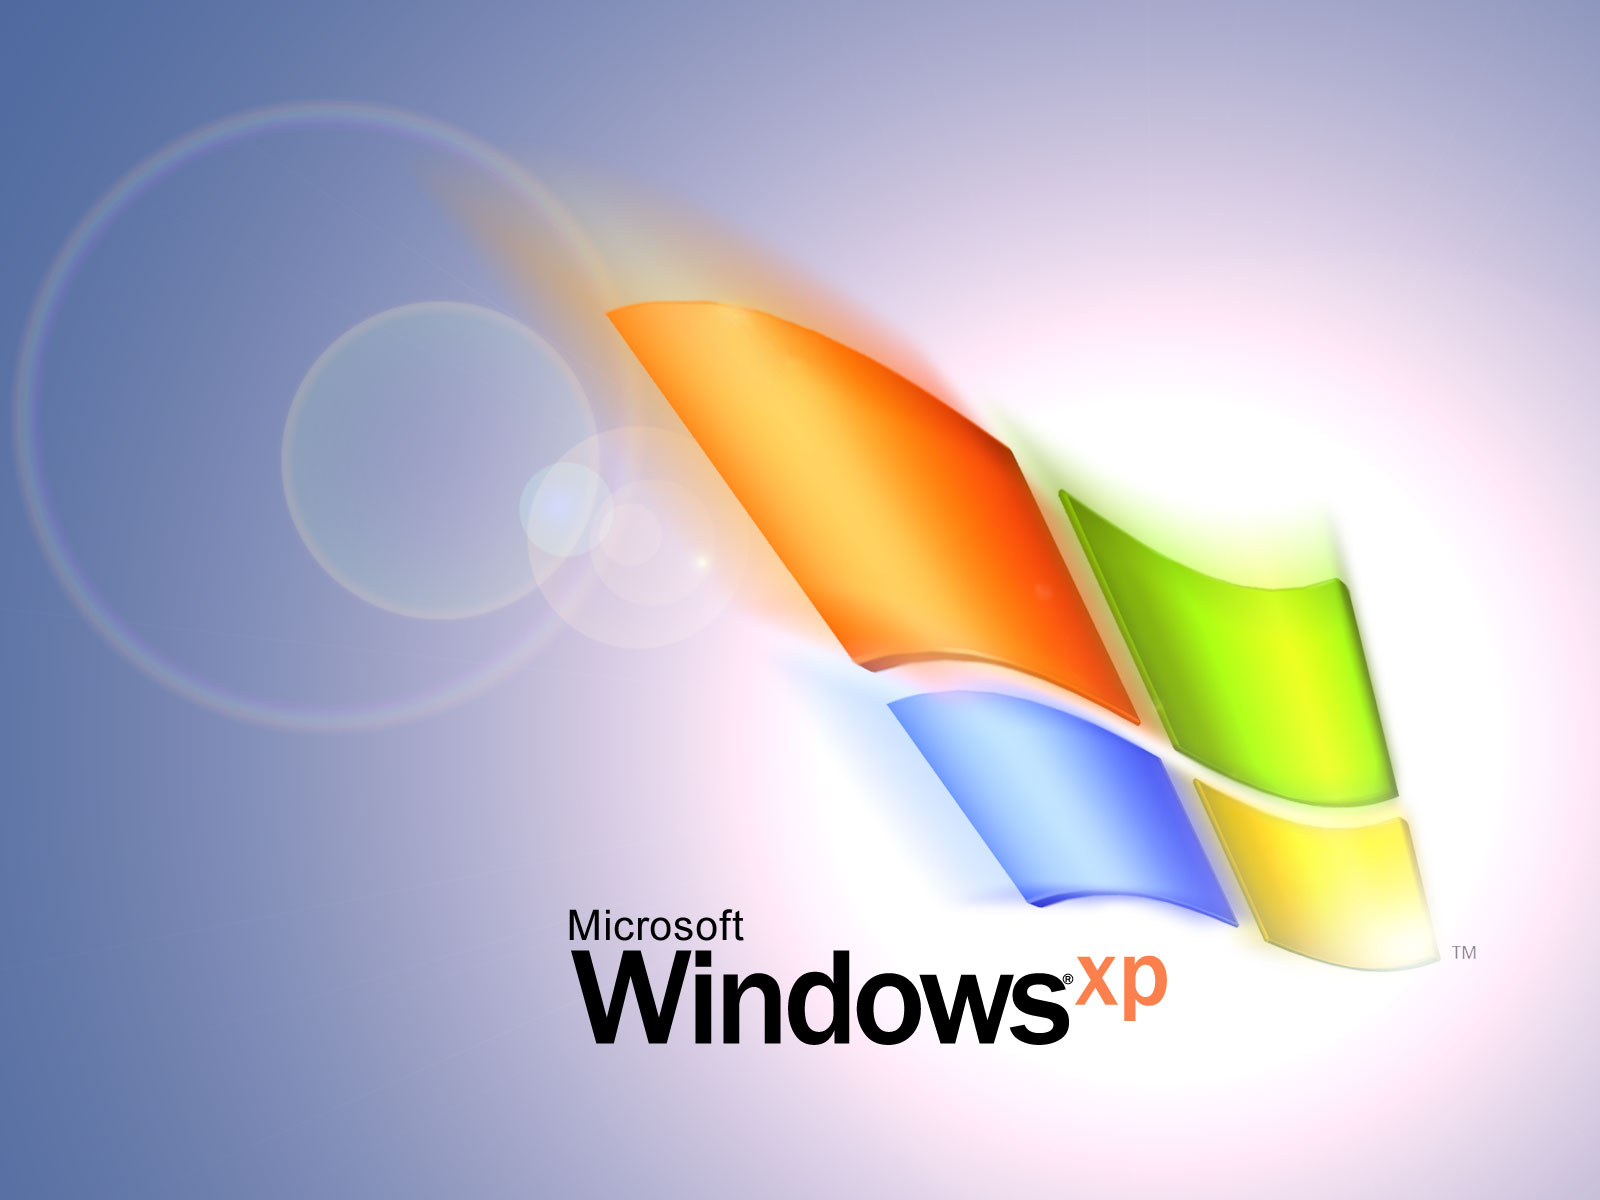 Microsoft windows xp download tool | Microsoft Tools For